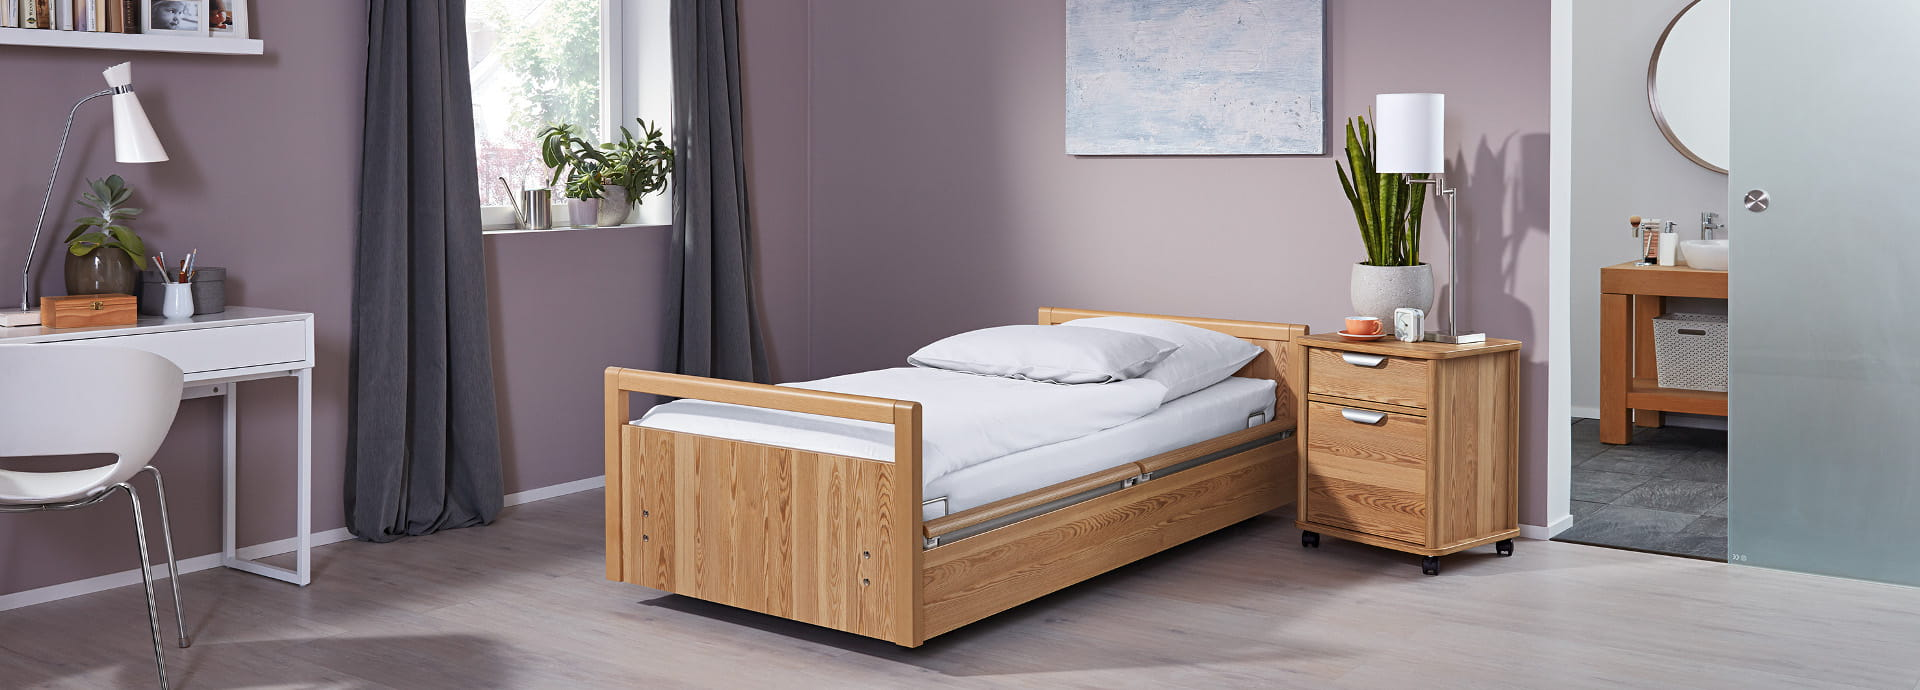 sentida 6 - universal low nursing bed